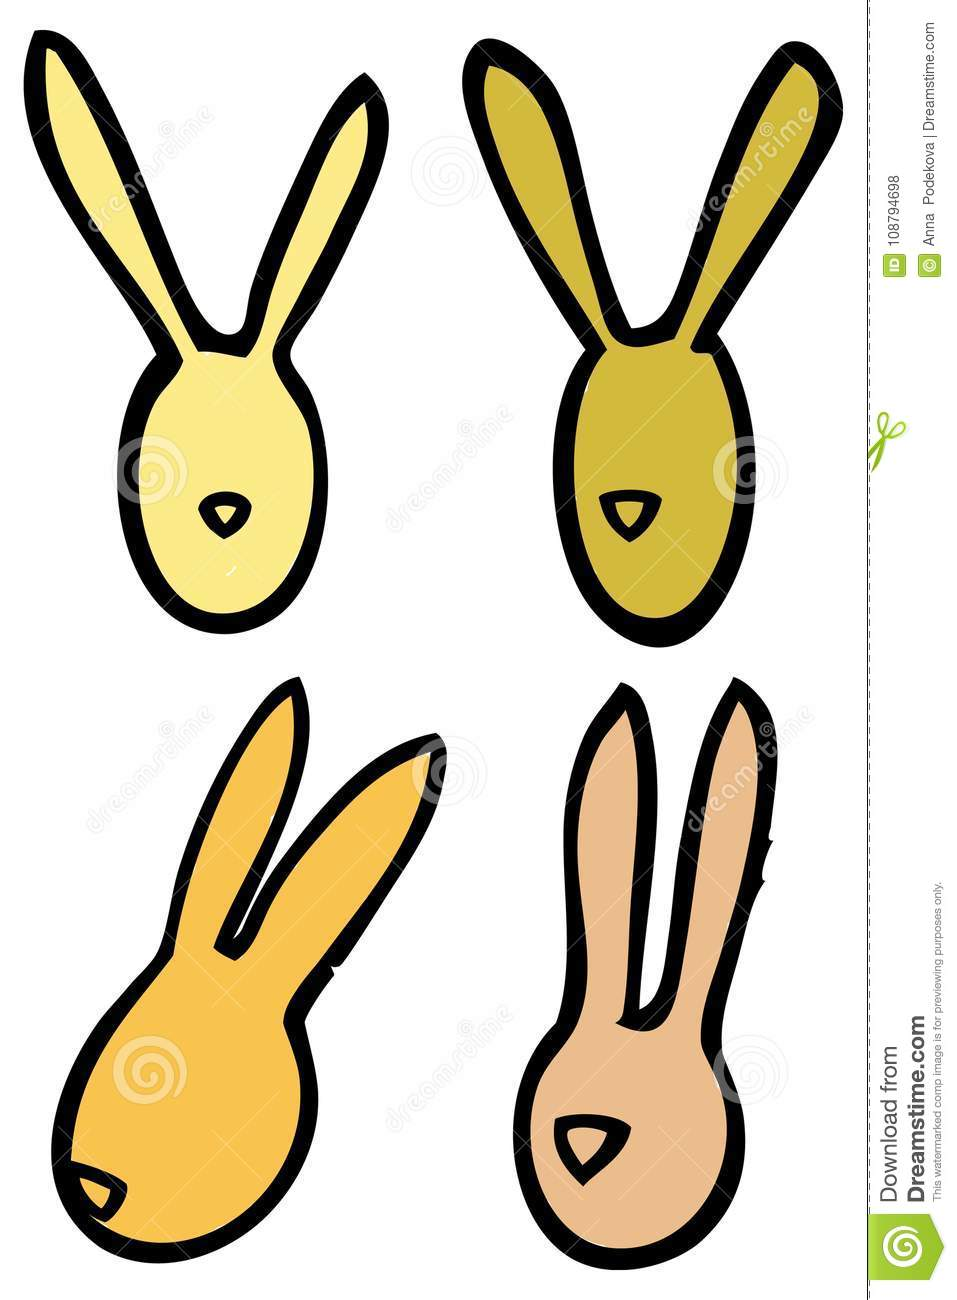 Easter vector linear bunnies rabbits head silhouettes in bright colors